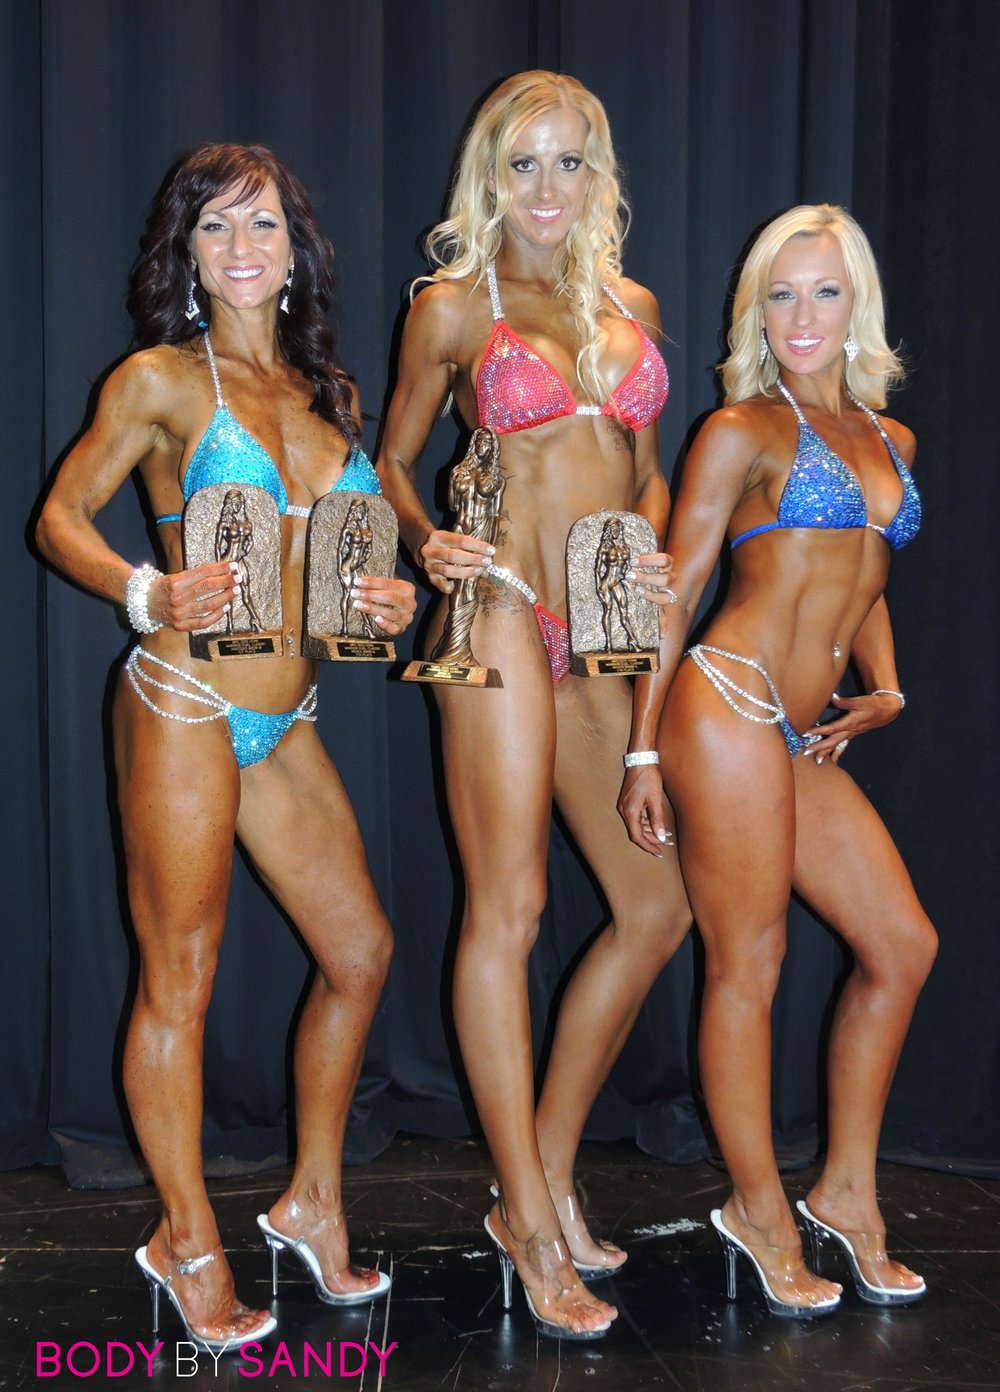 2015 NPC Warrior Classic-The girls with trophies.jpg